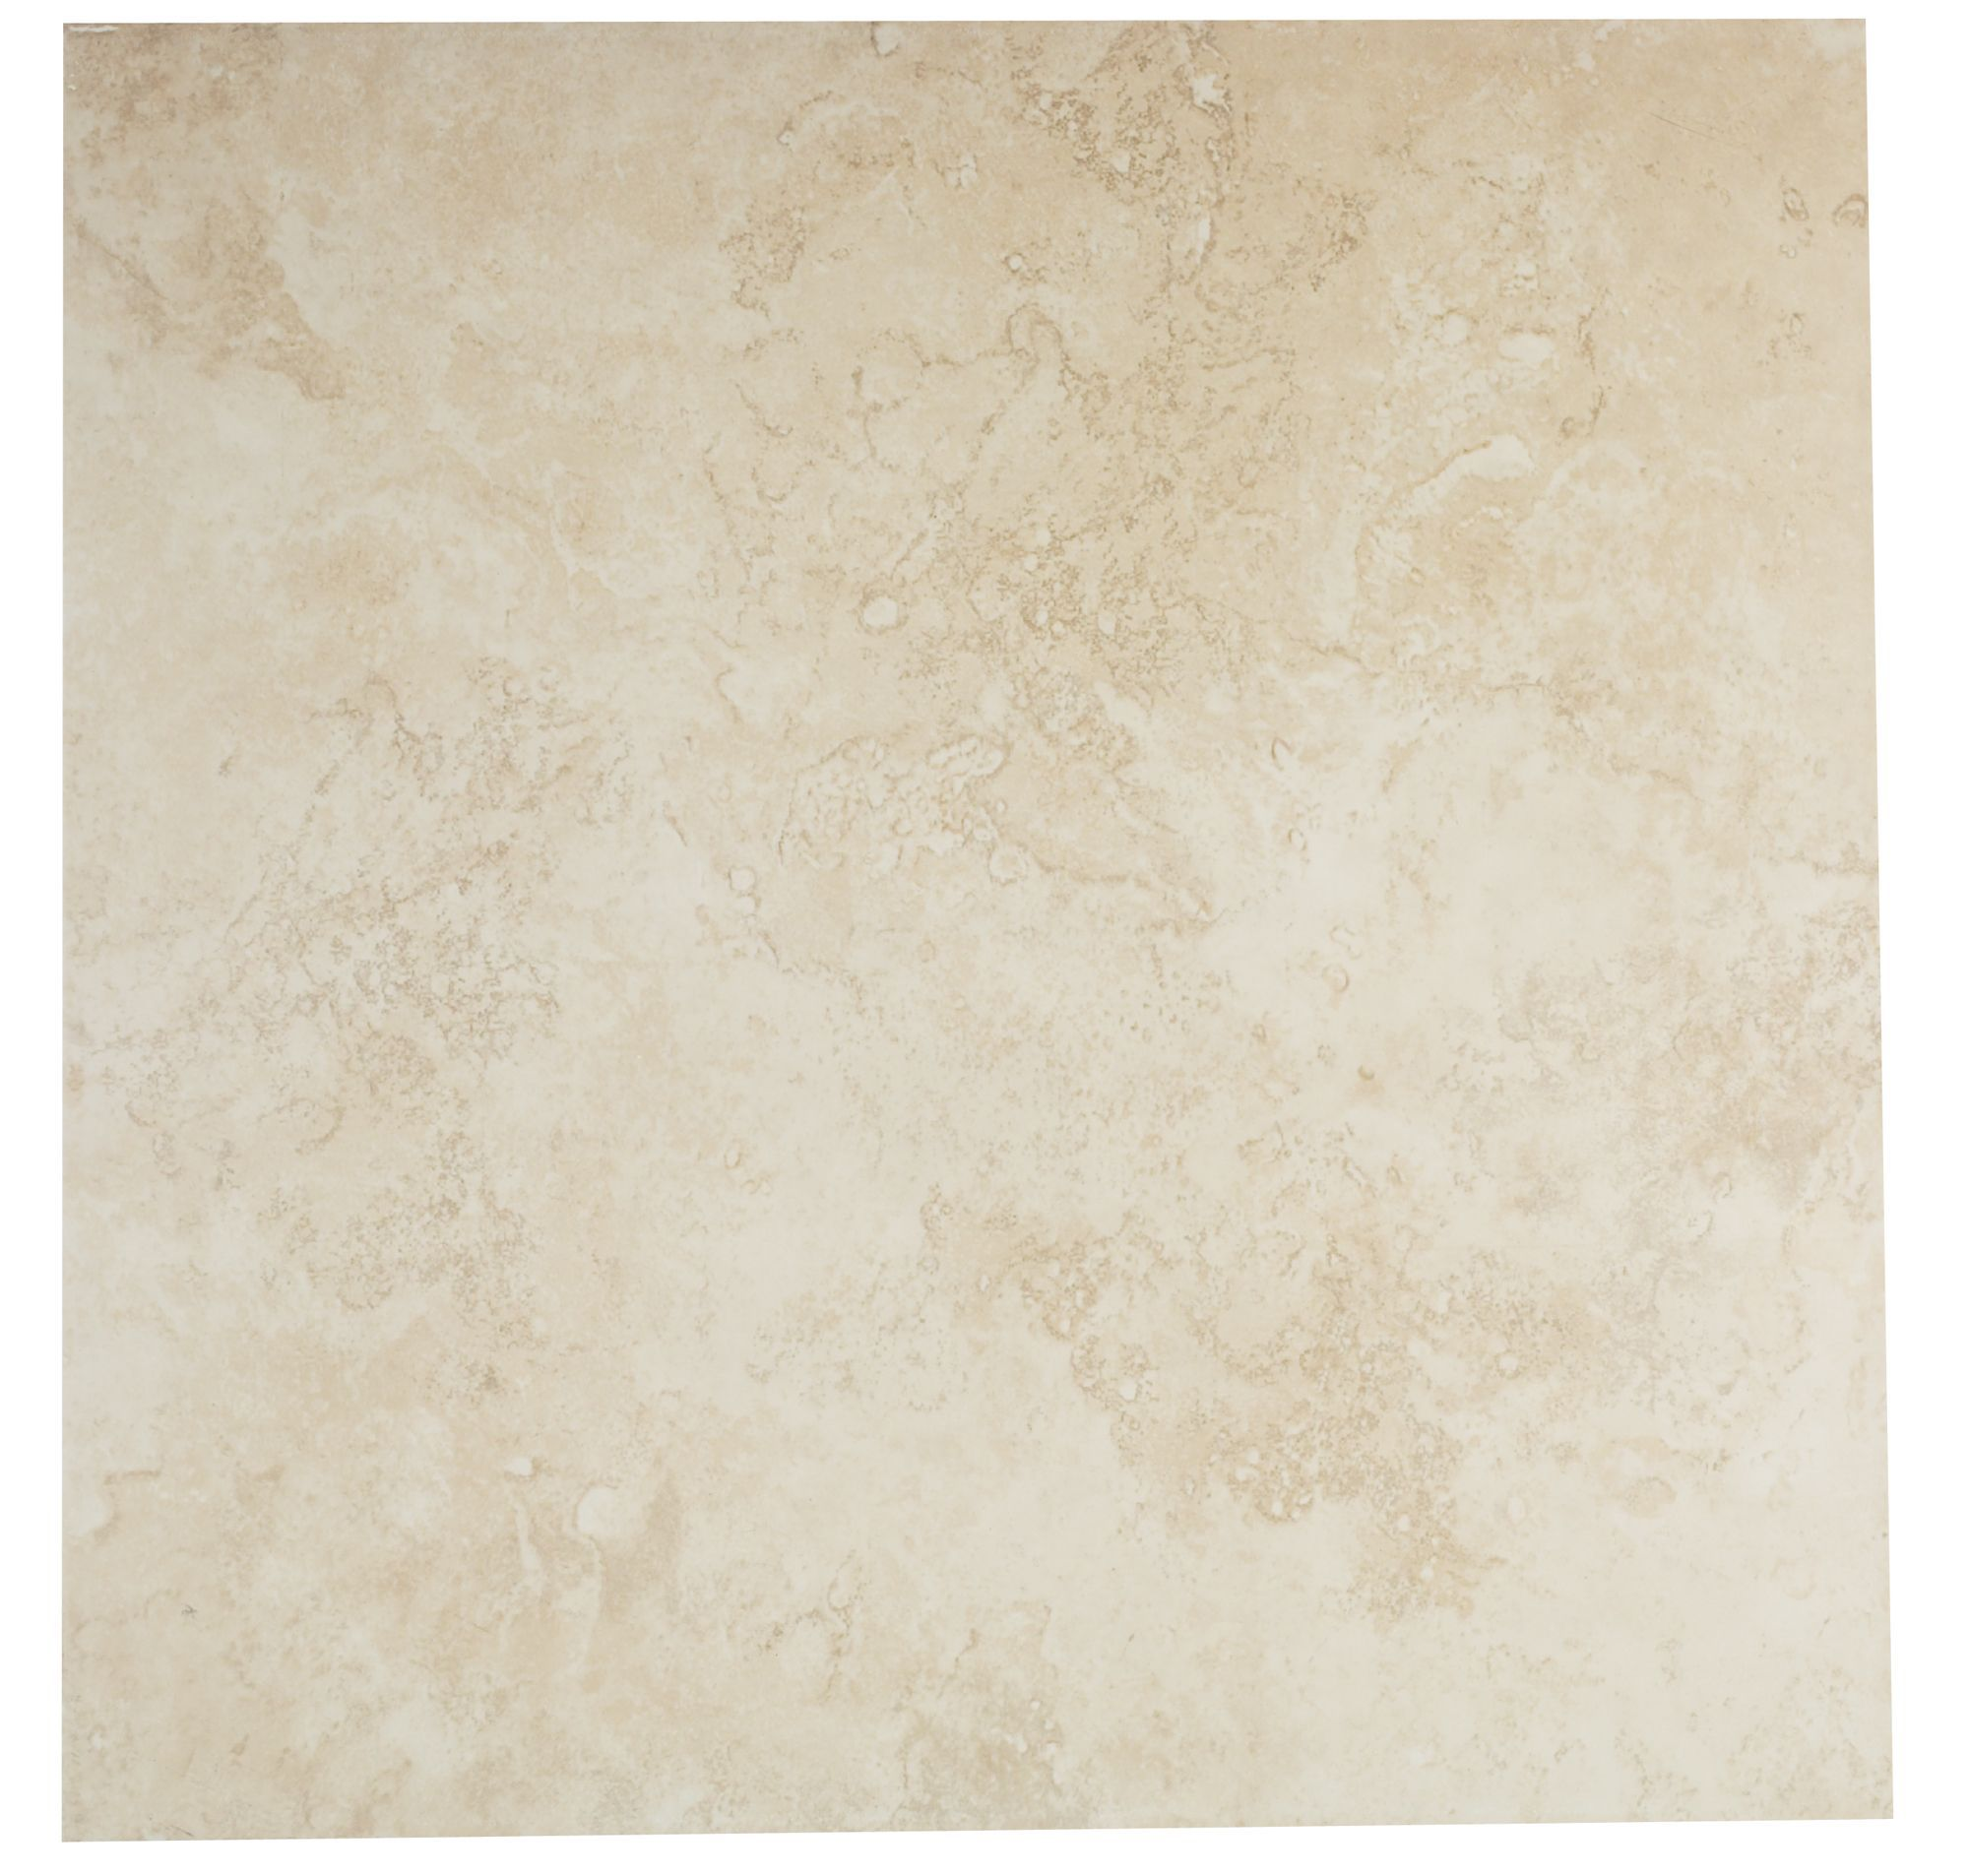 Castle Travertine Cream Stone Effect Ceramic Wall Floor Tile Pack Of 5 L 450mm W Departments Diy At B Q